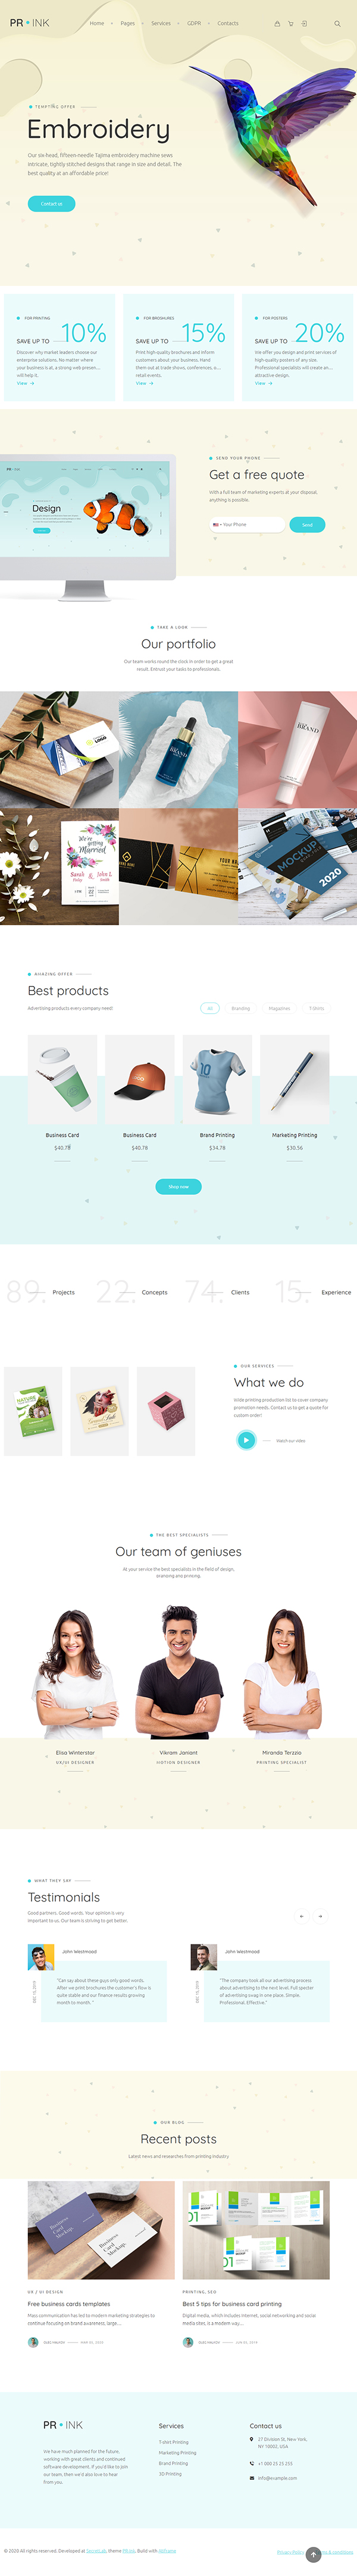 Prink - Print Shop WordPress Theme